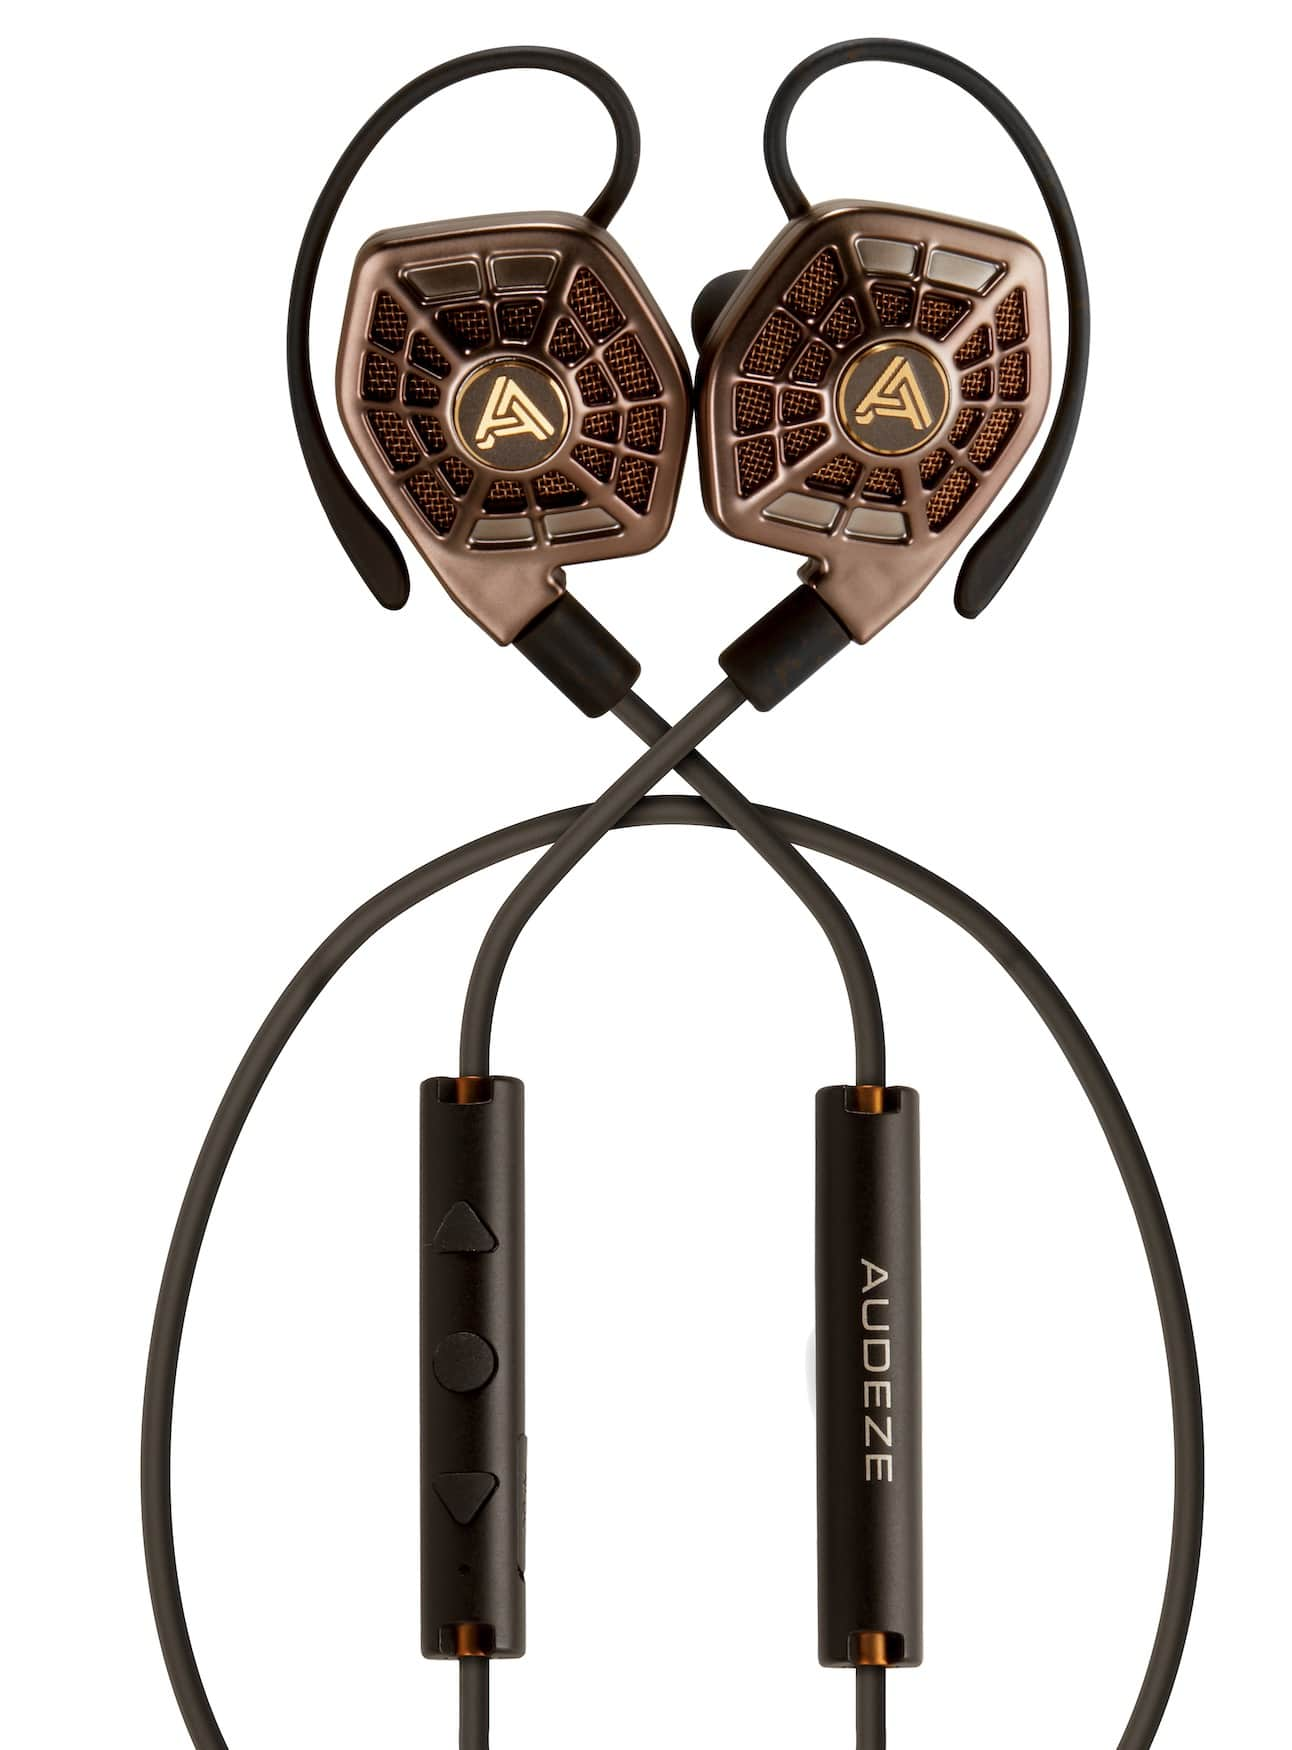 iSINE Headphones Go Wireless For Audeze